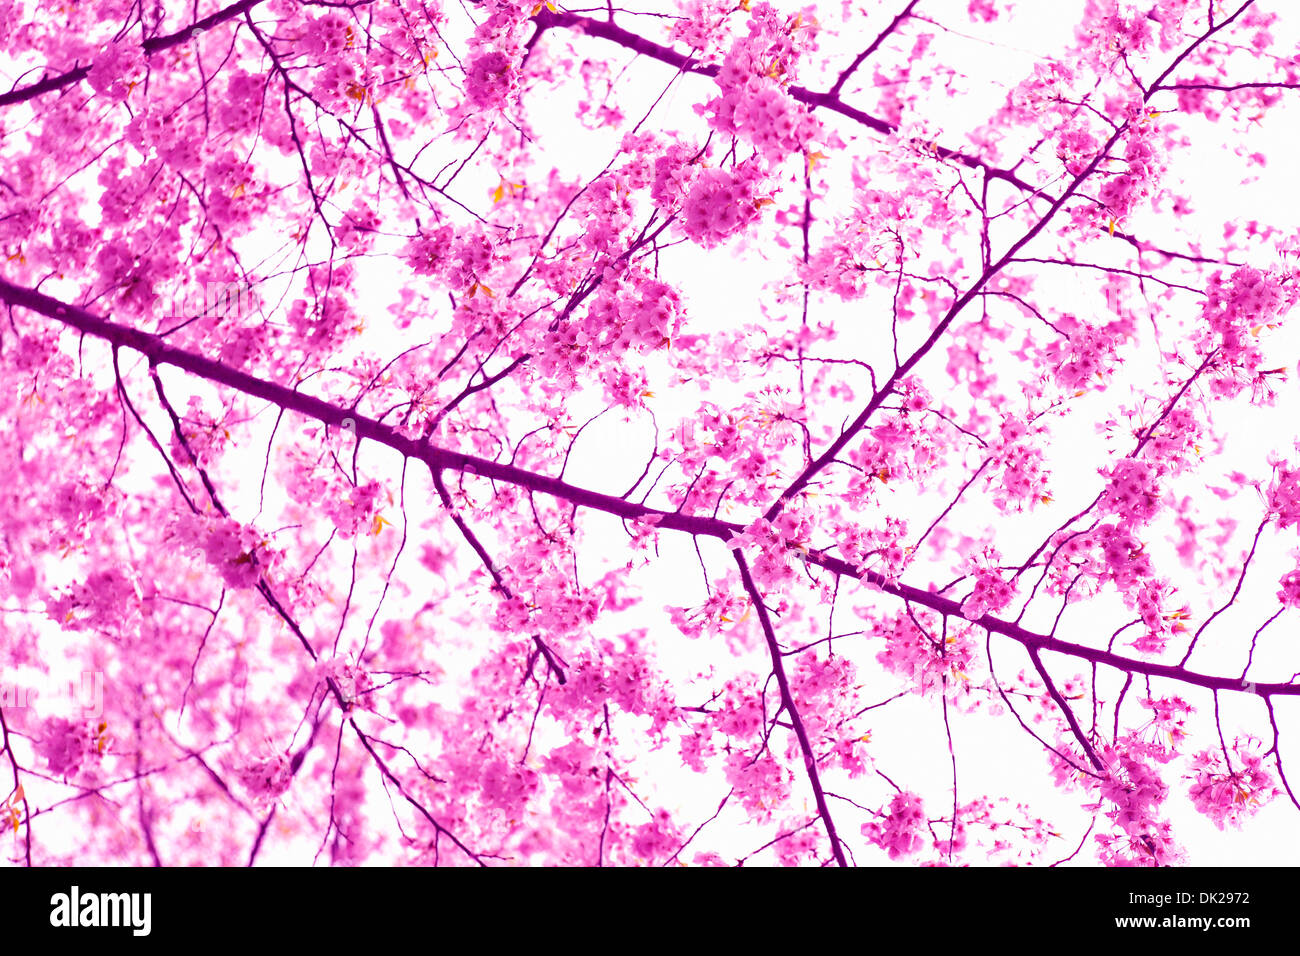 Close up low angle view of pink Cherry Blossoms sur spring branch Photo Stock